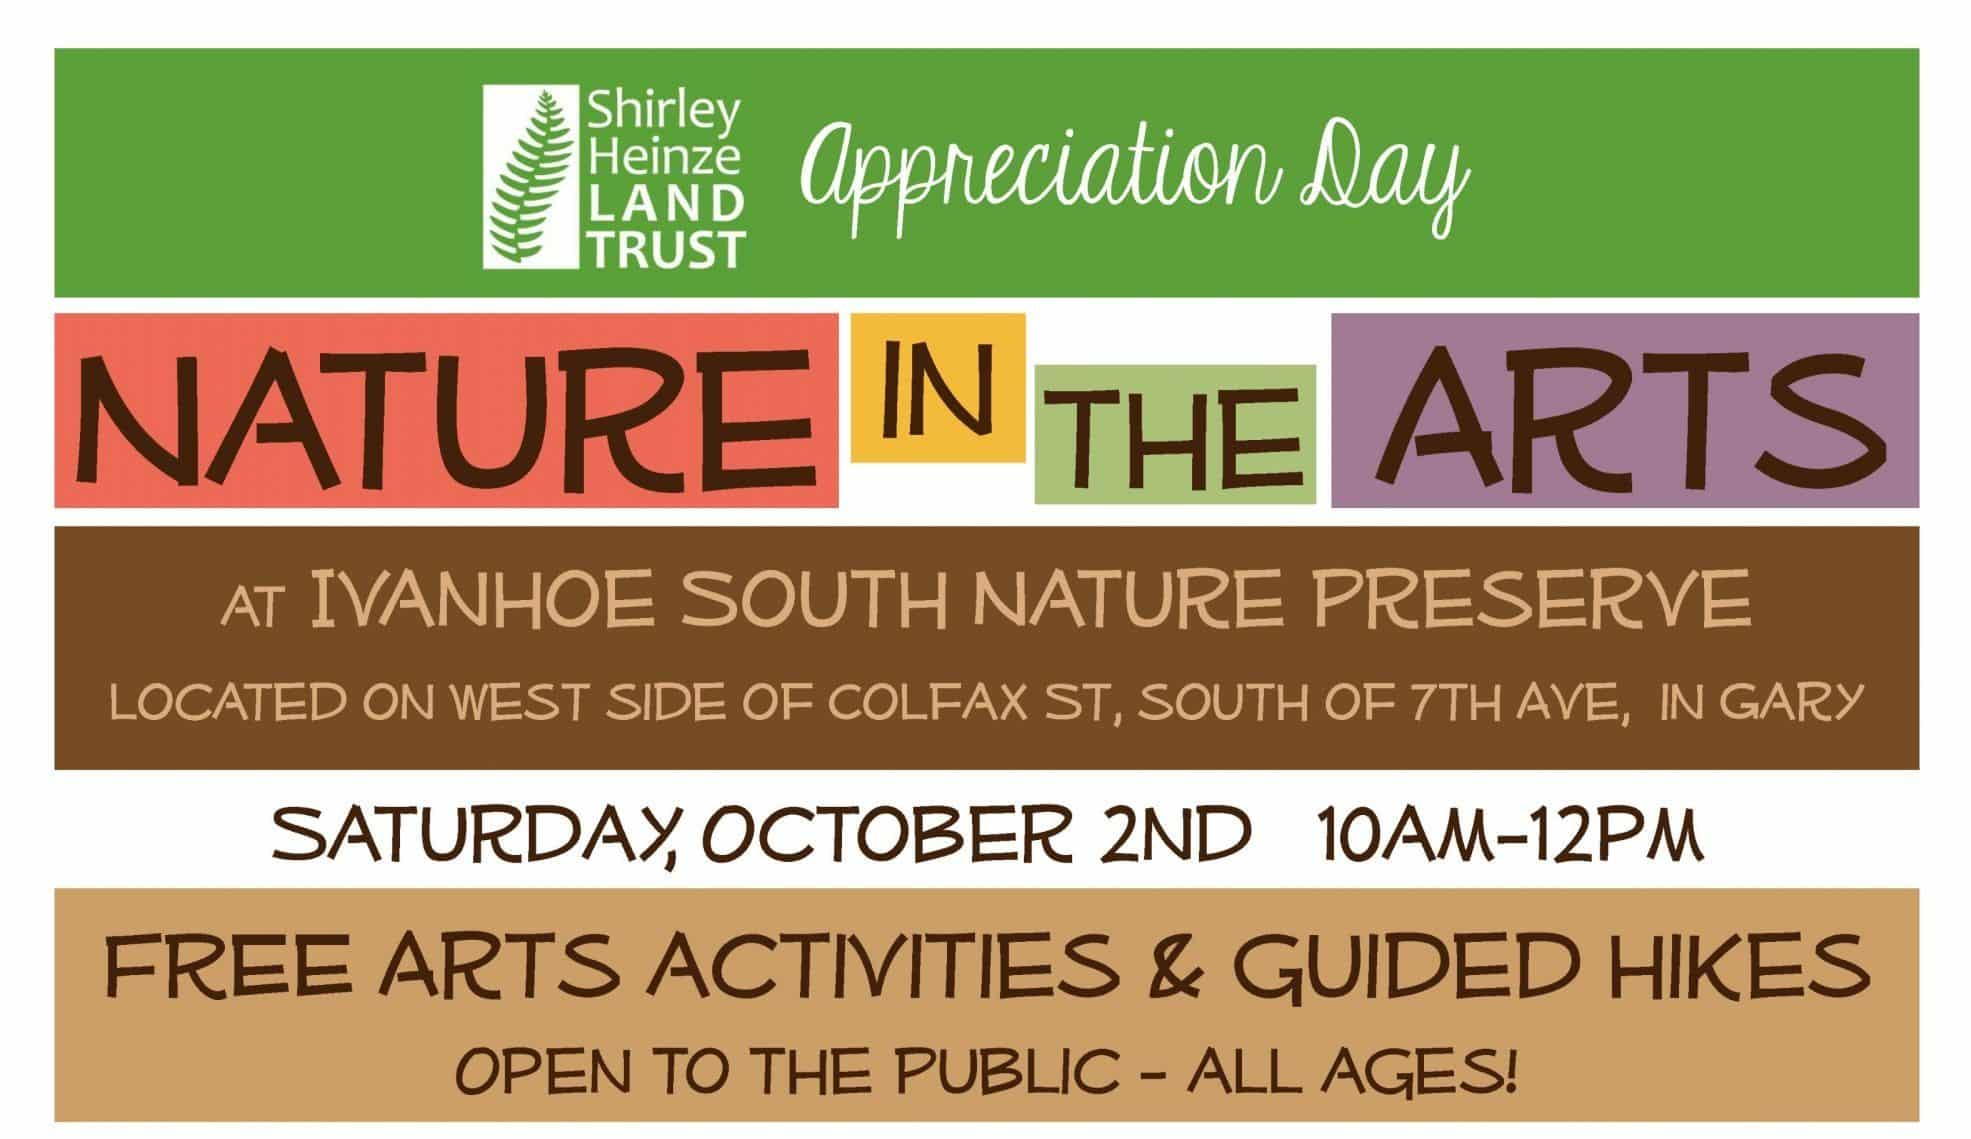 nature in the arts appreciation day ivanhoe south nature preserve gary indiana scaled e1632503333626